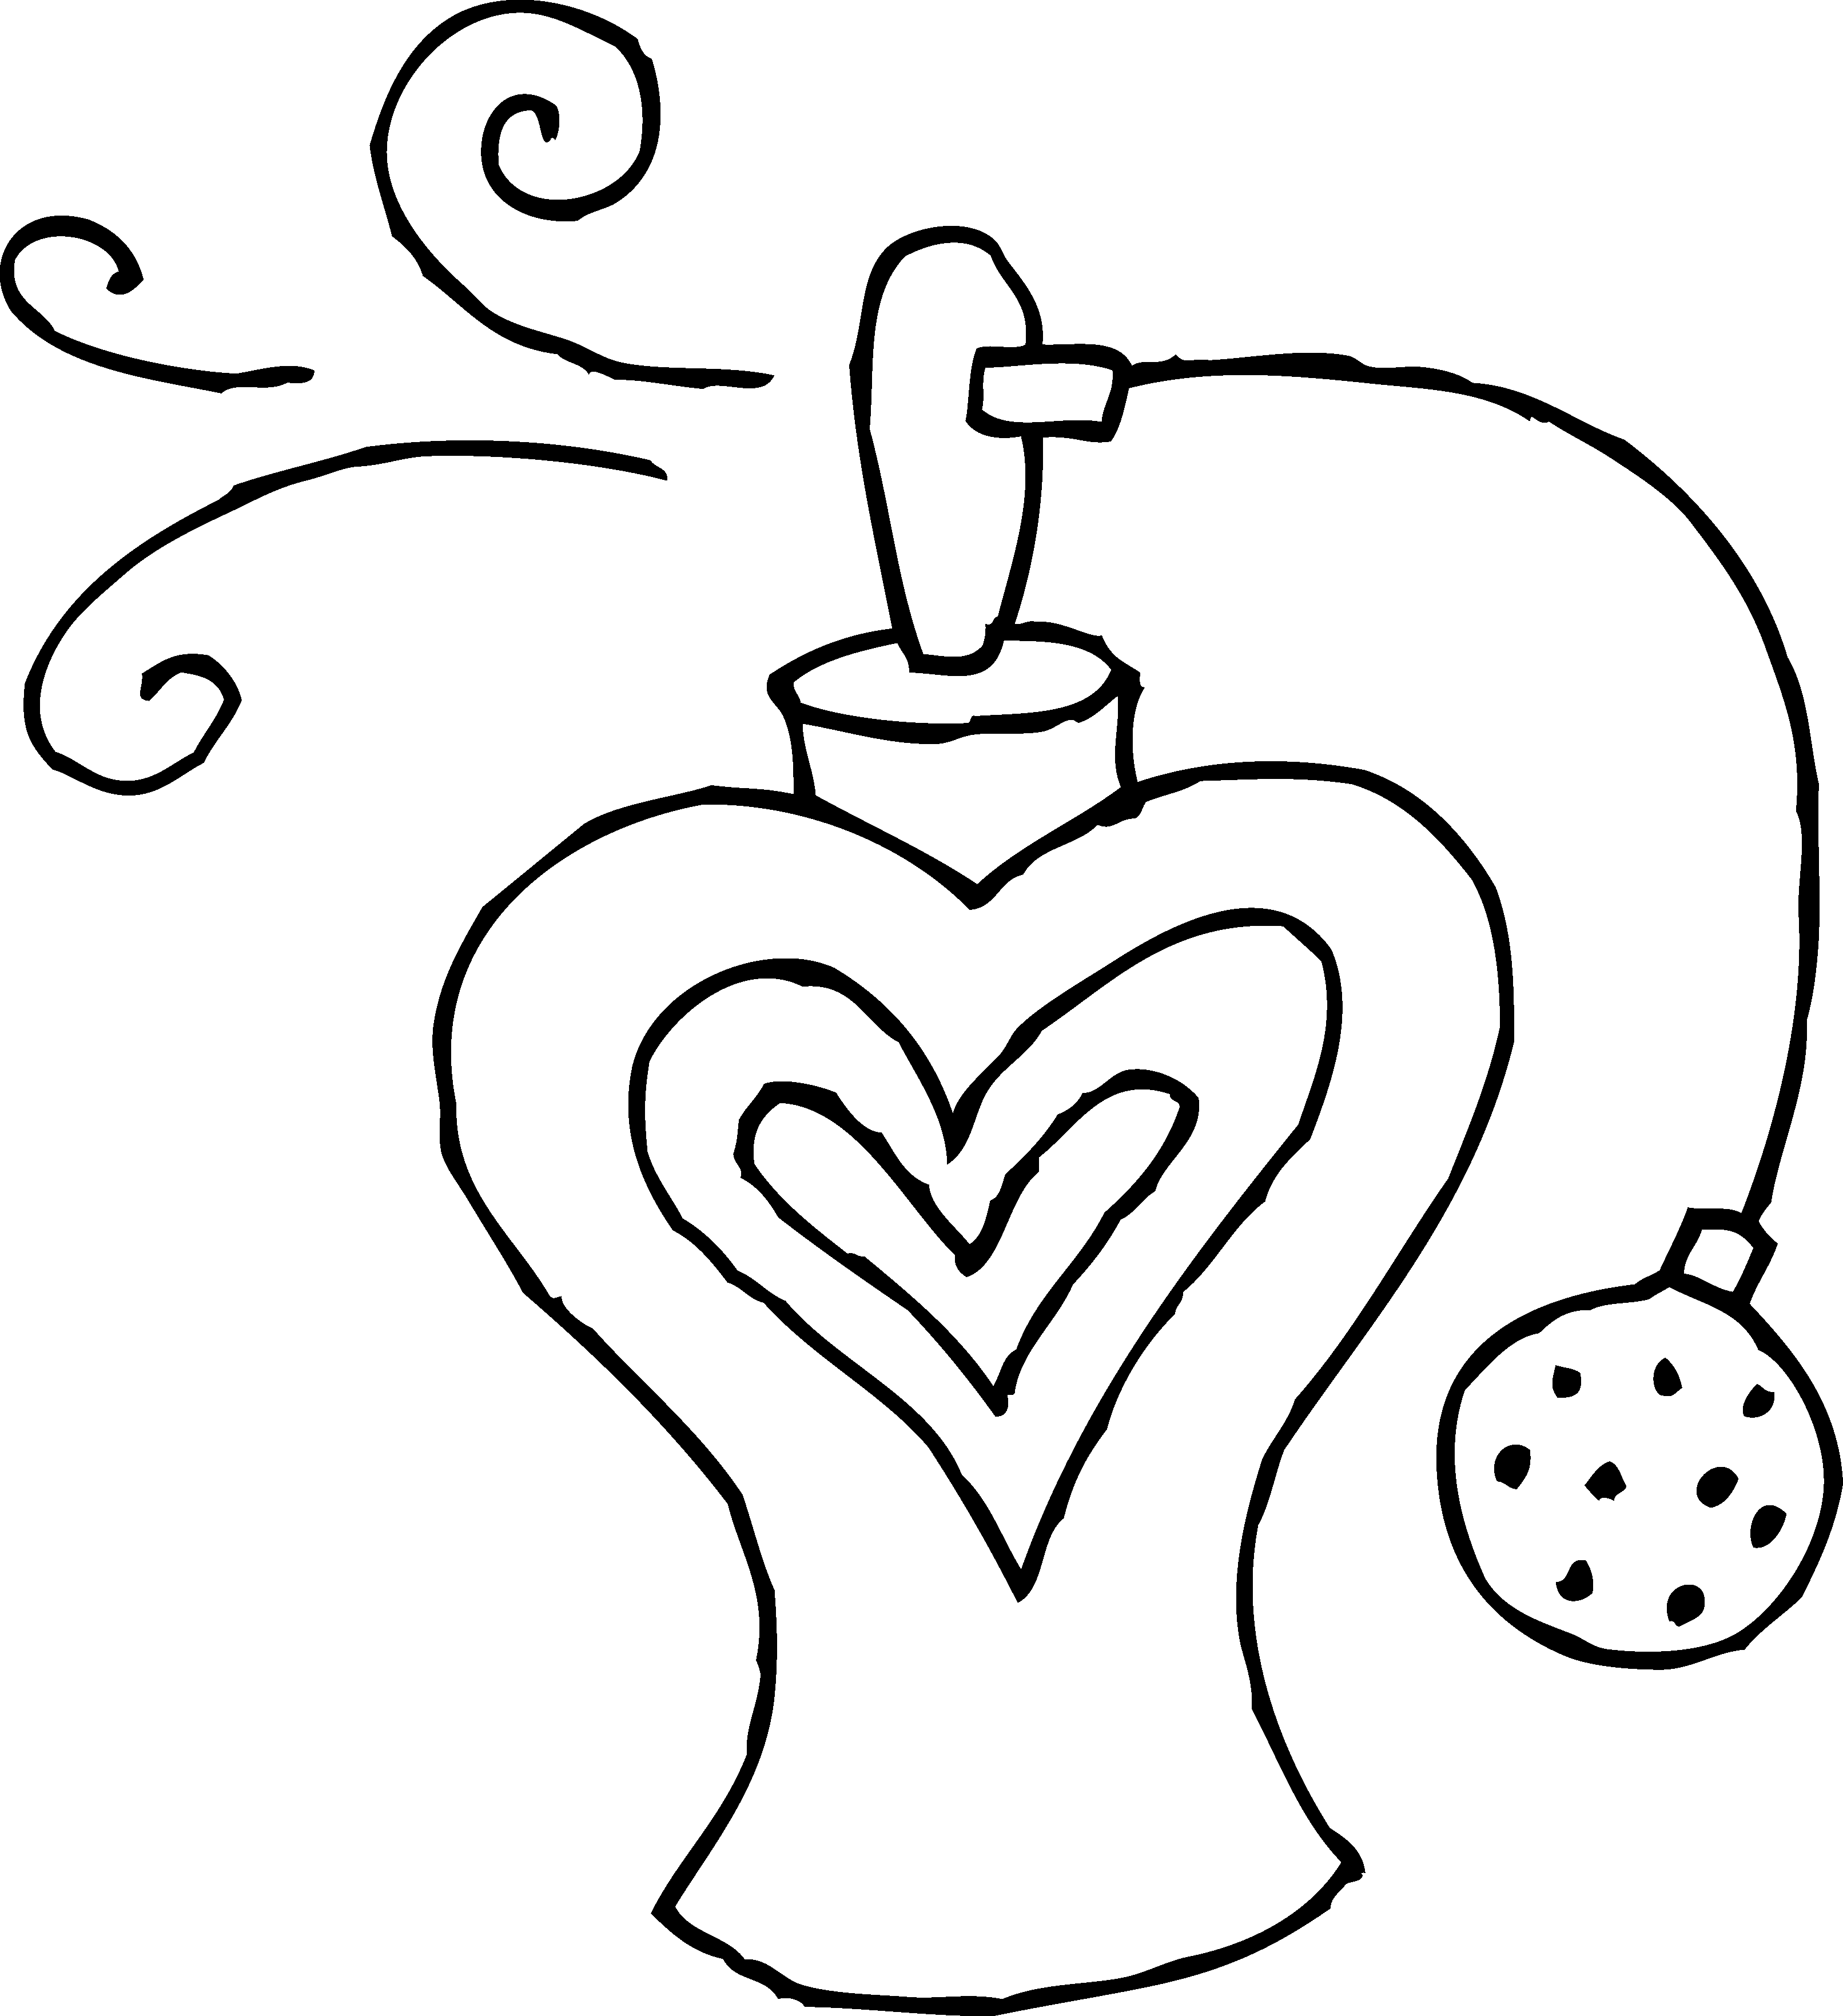 Perfume clipart body spray. Bottle line art free